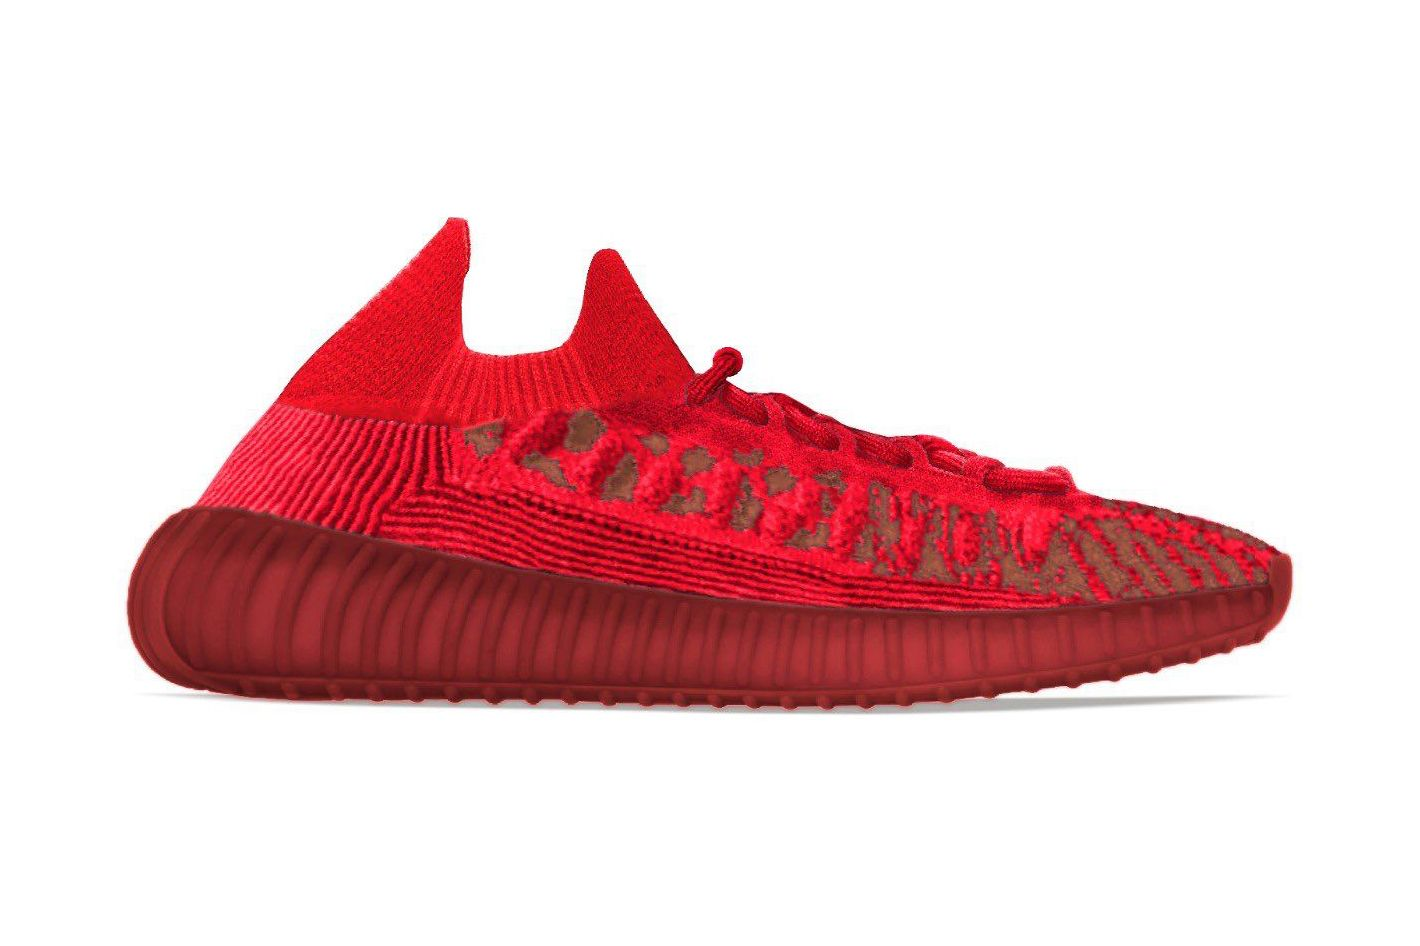 adidas YEEZY BOST 350 V2 CMPCT 'Slate Red'